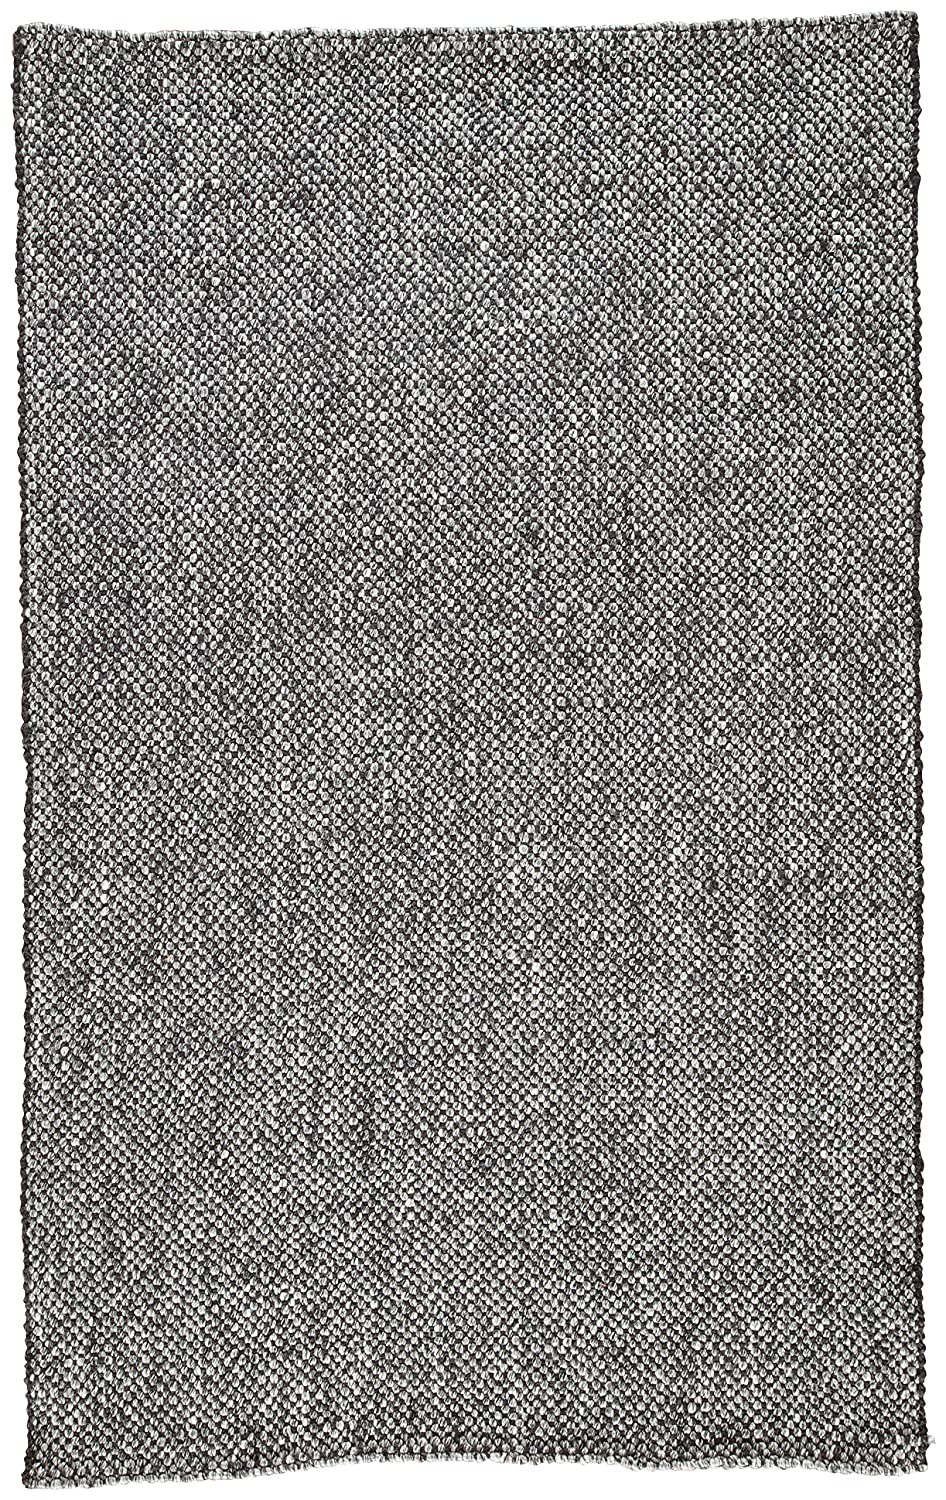 Amazon.com: Jaipur RUG138302 Topper Area Rugs, 8X10, Black, Gray: Kitchen & Dining